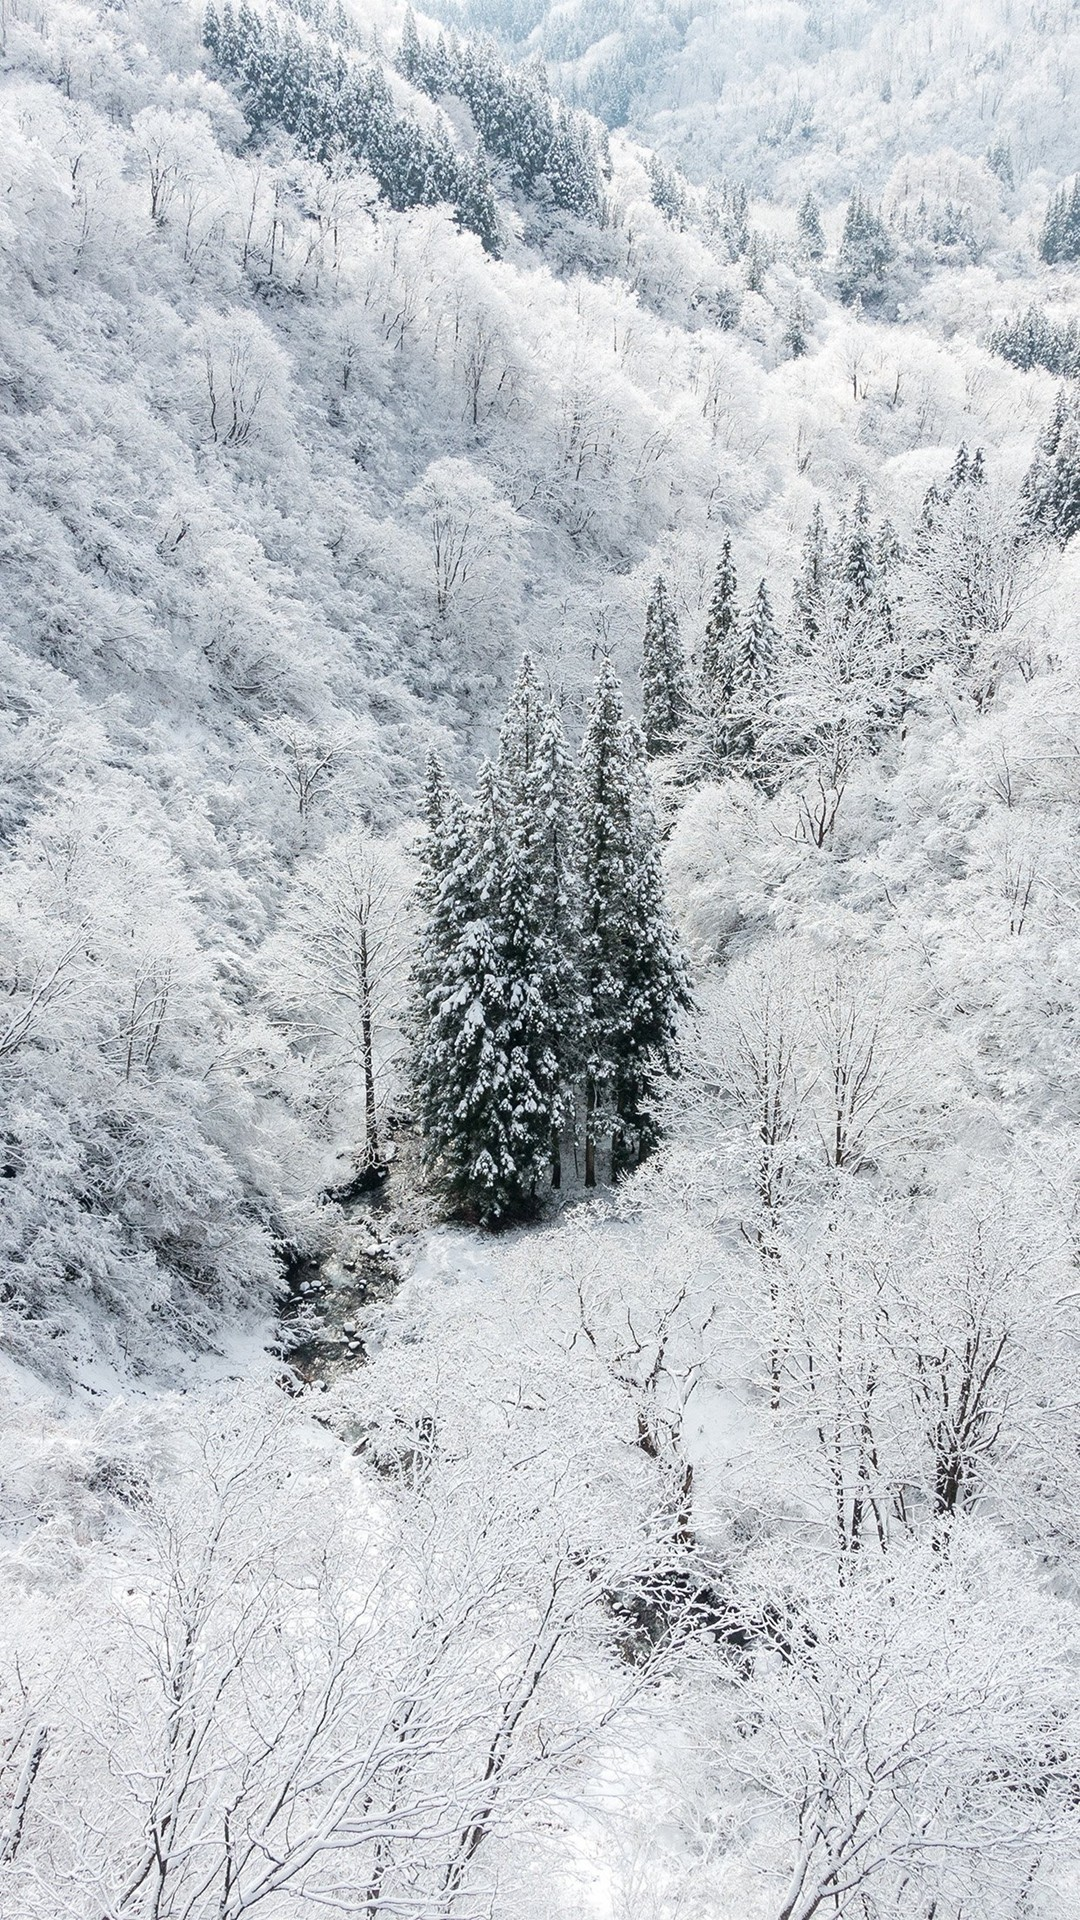 Winter White Snow Wood Forest Mountain iPhone 8 wallpaper